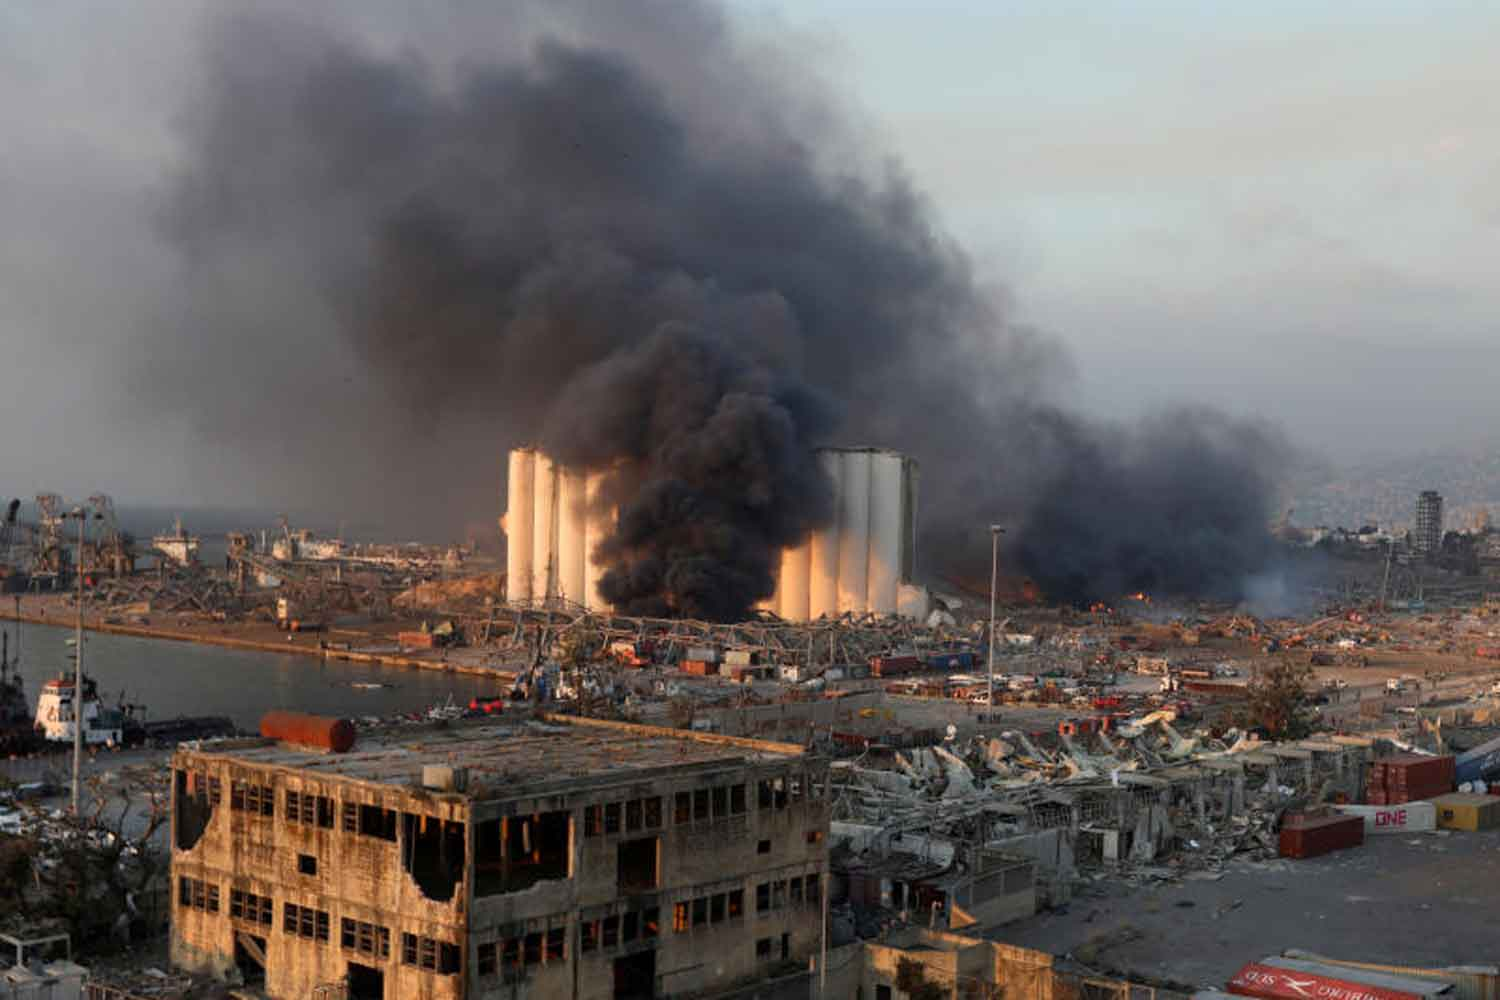 CMA CGM states one worker is missing, many injured after Beirut blast